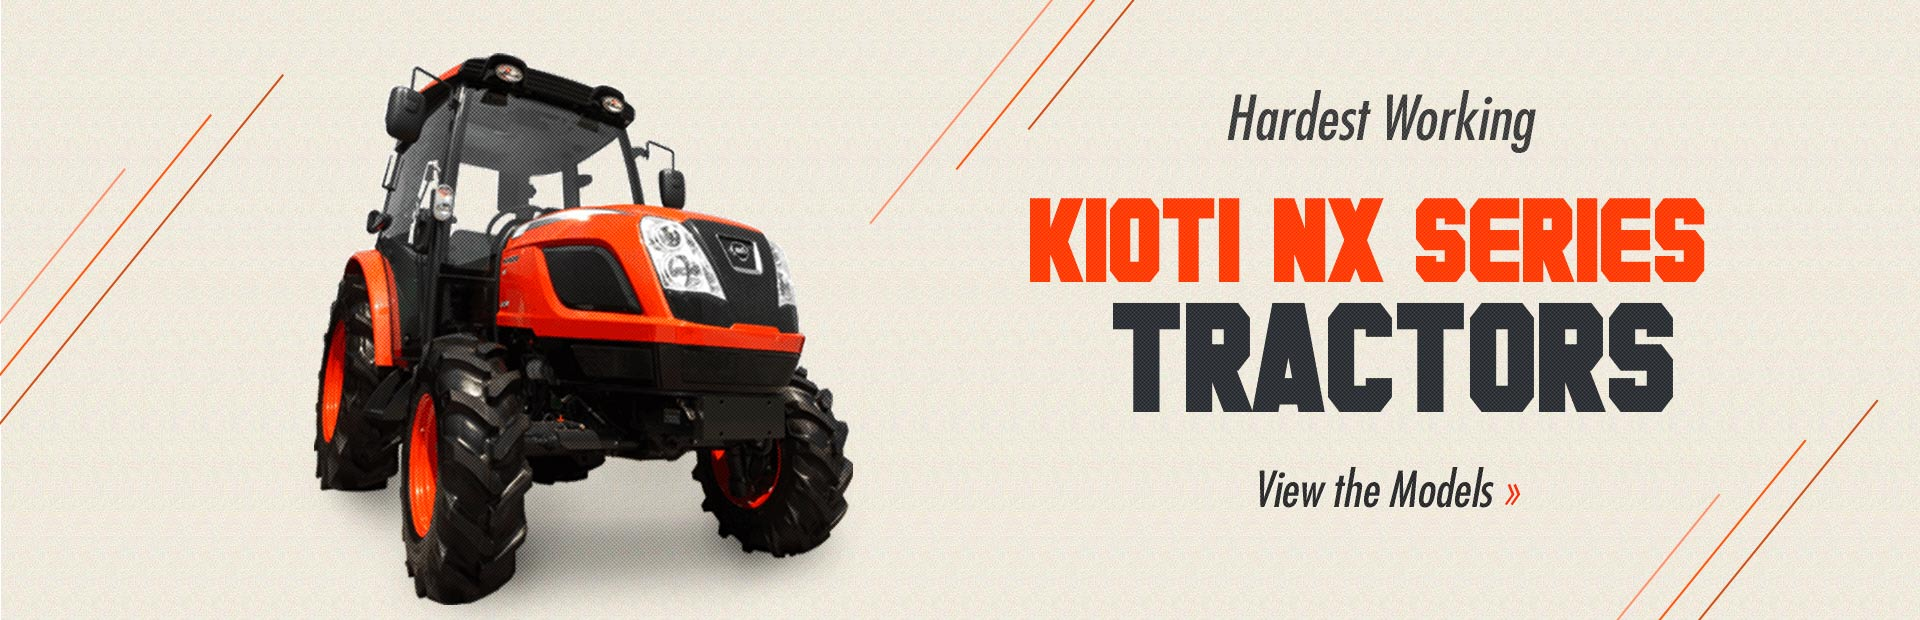 KIOTI NX Series Tractors: Click here to see the models.